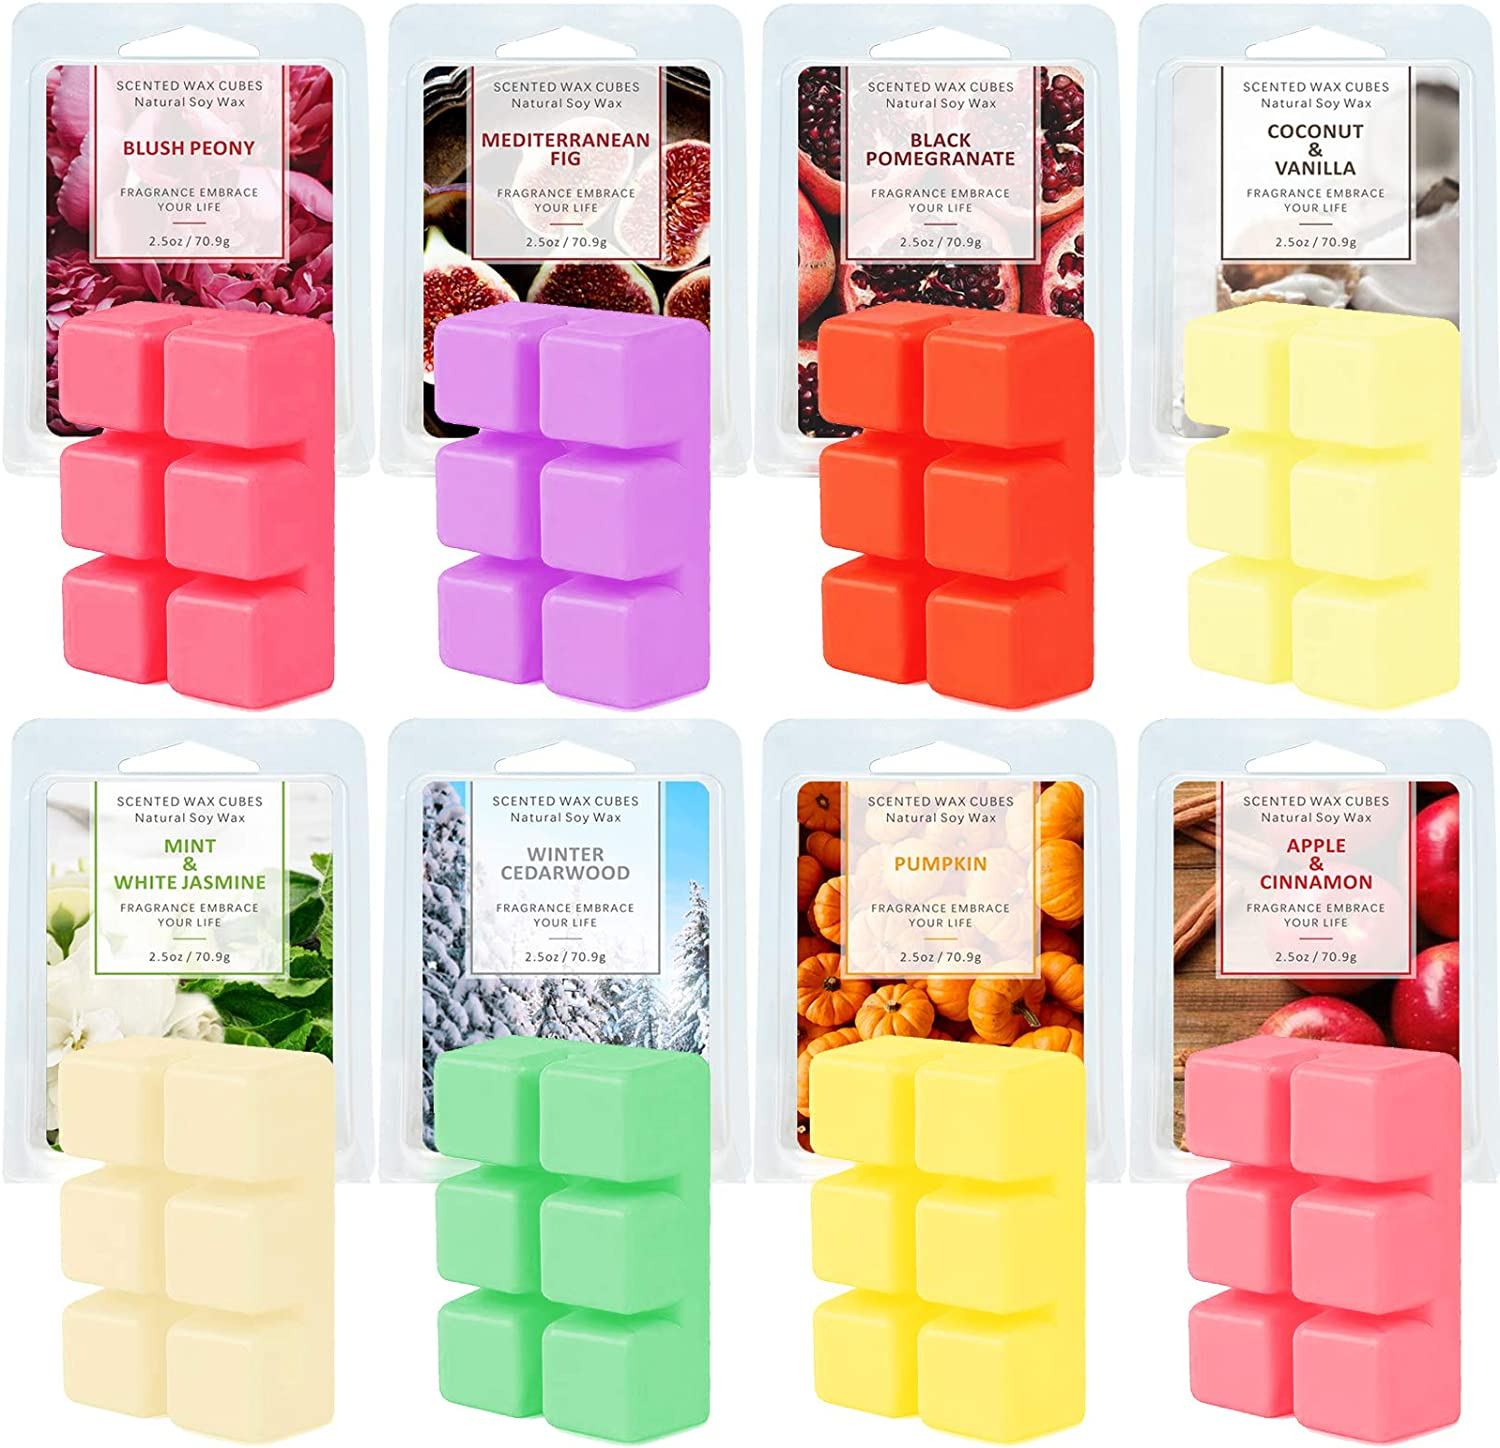 SnailDigit 8 Scents Scented Wax Melts for Home, Wax Cubes, 8 Scent Soy Wax Natural Soy Wax Melt